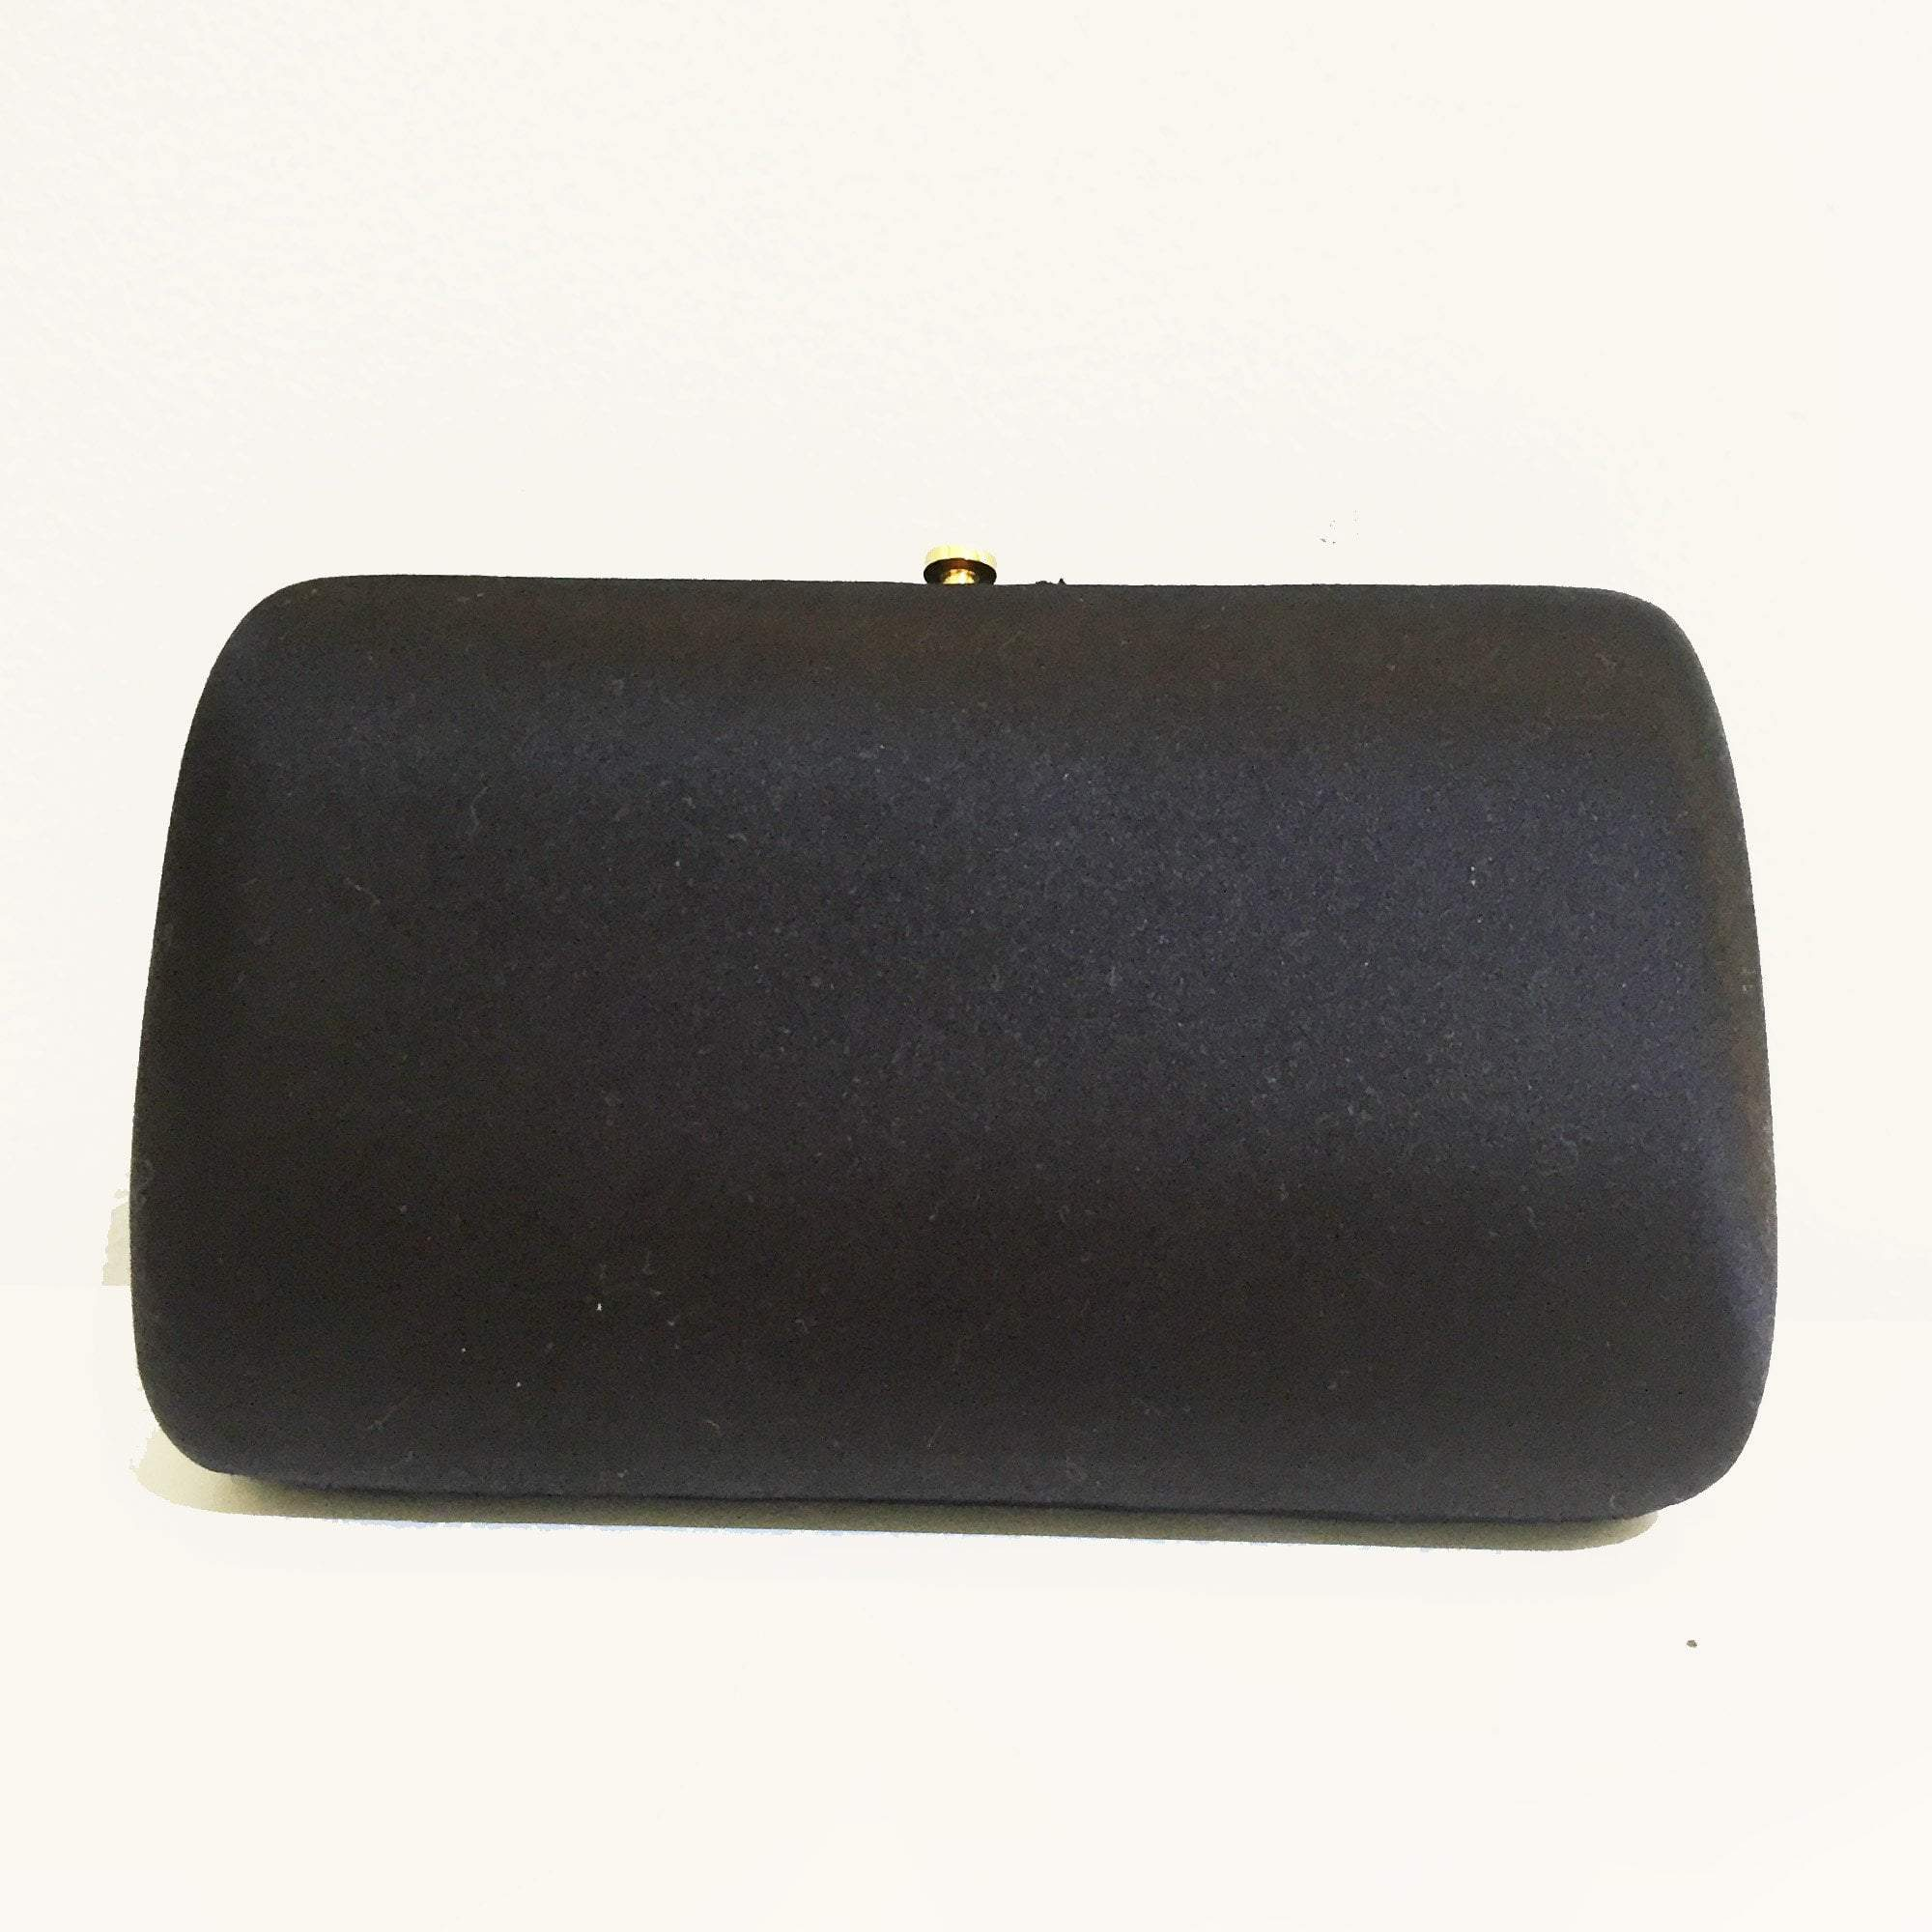 ... norway prada satin evening clutch bag garderobe a942b afe8b cheap  womens saffiano ... 50fd79dd05